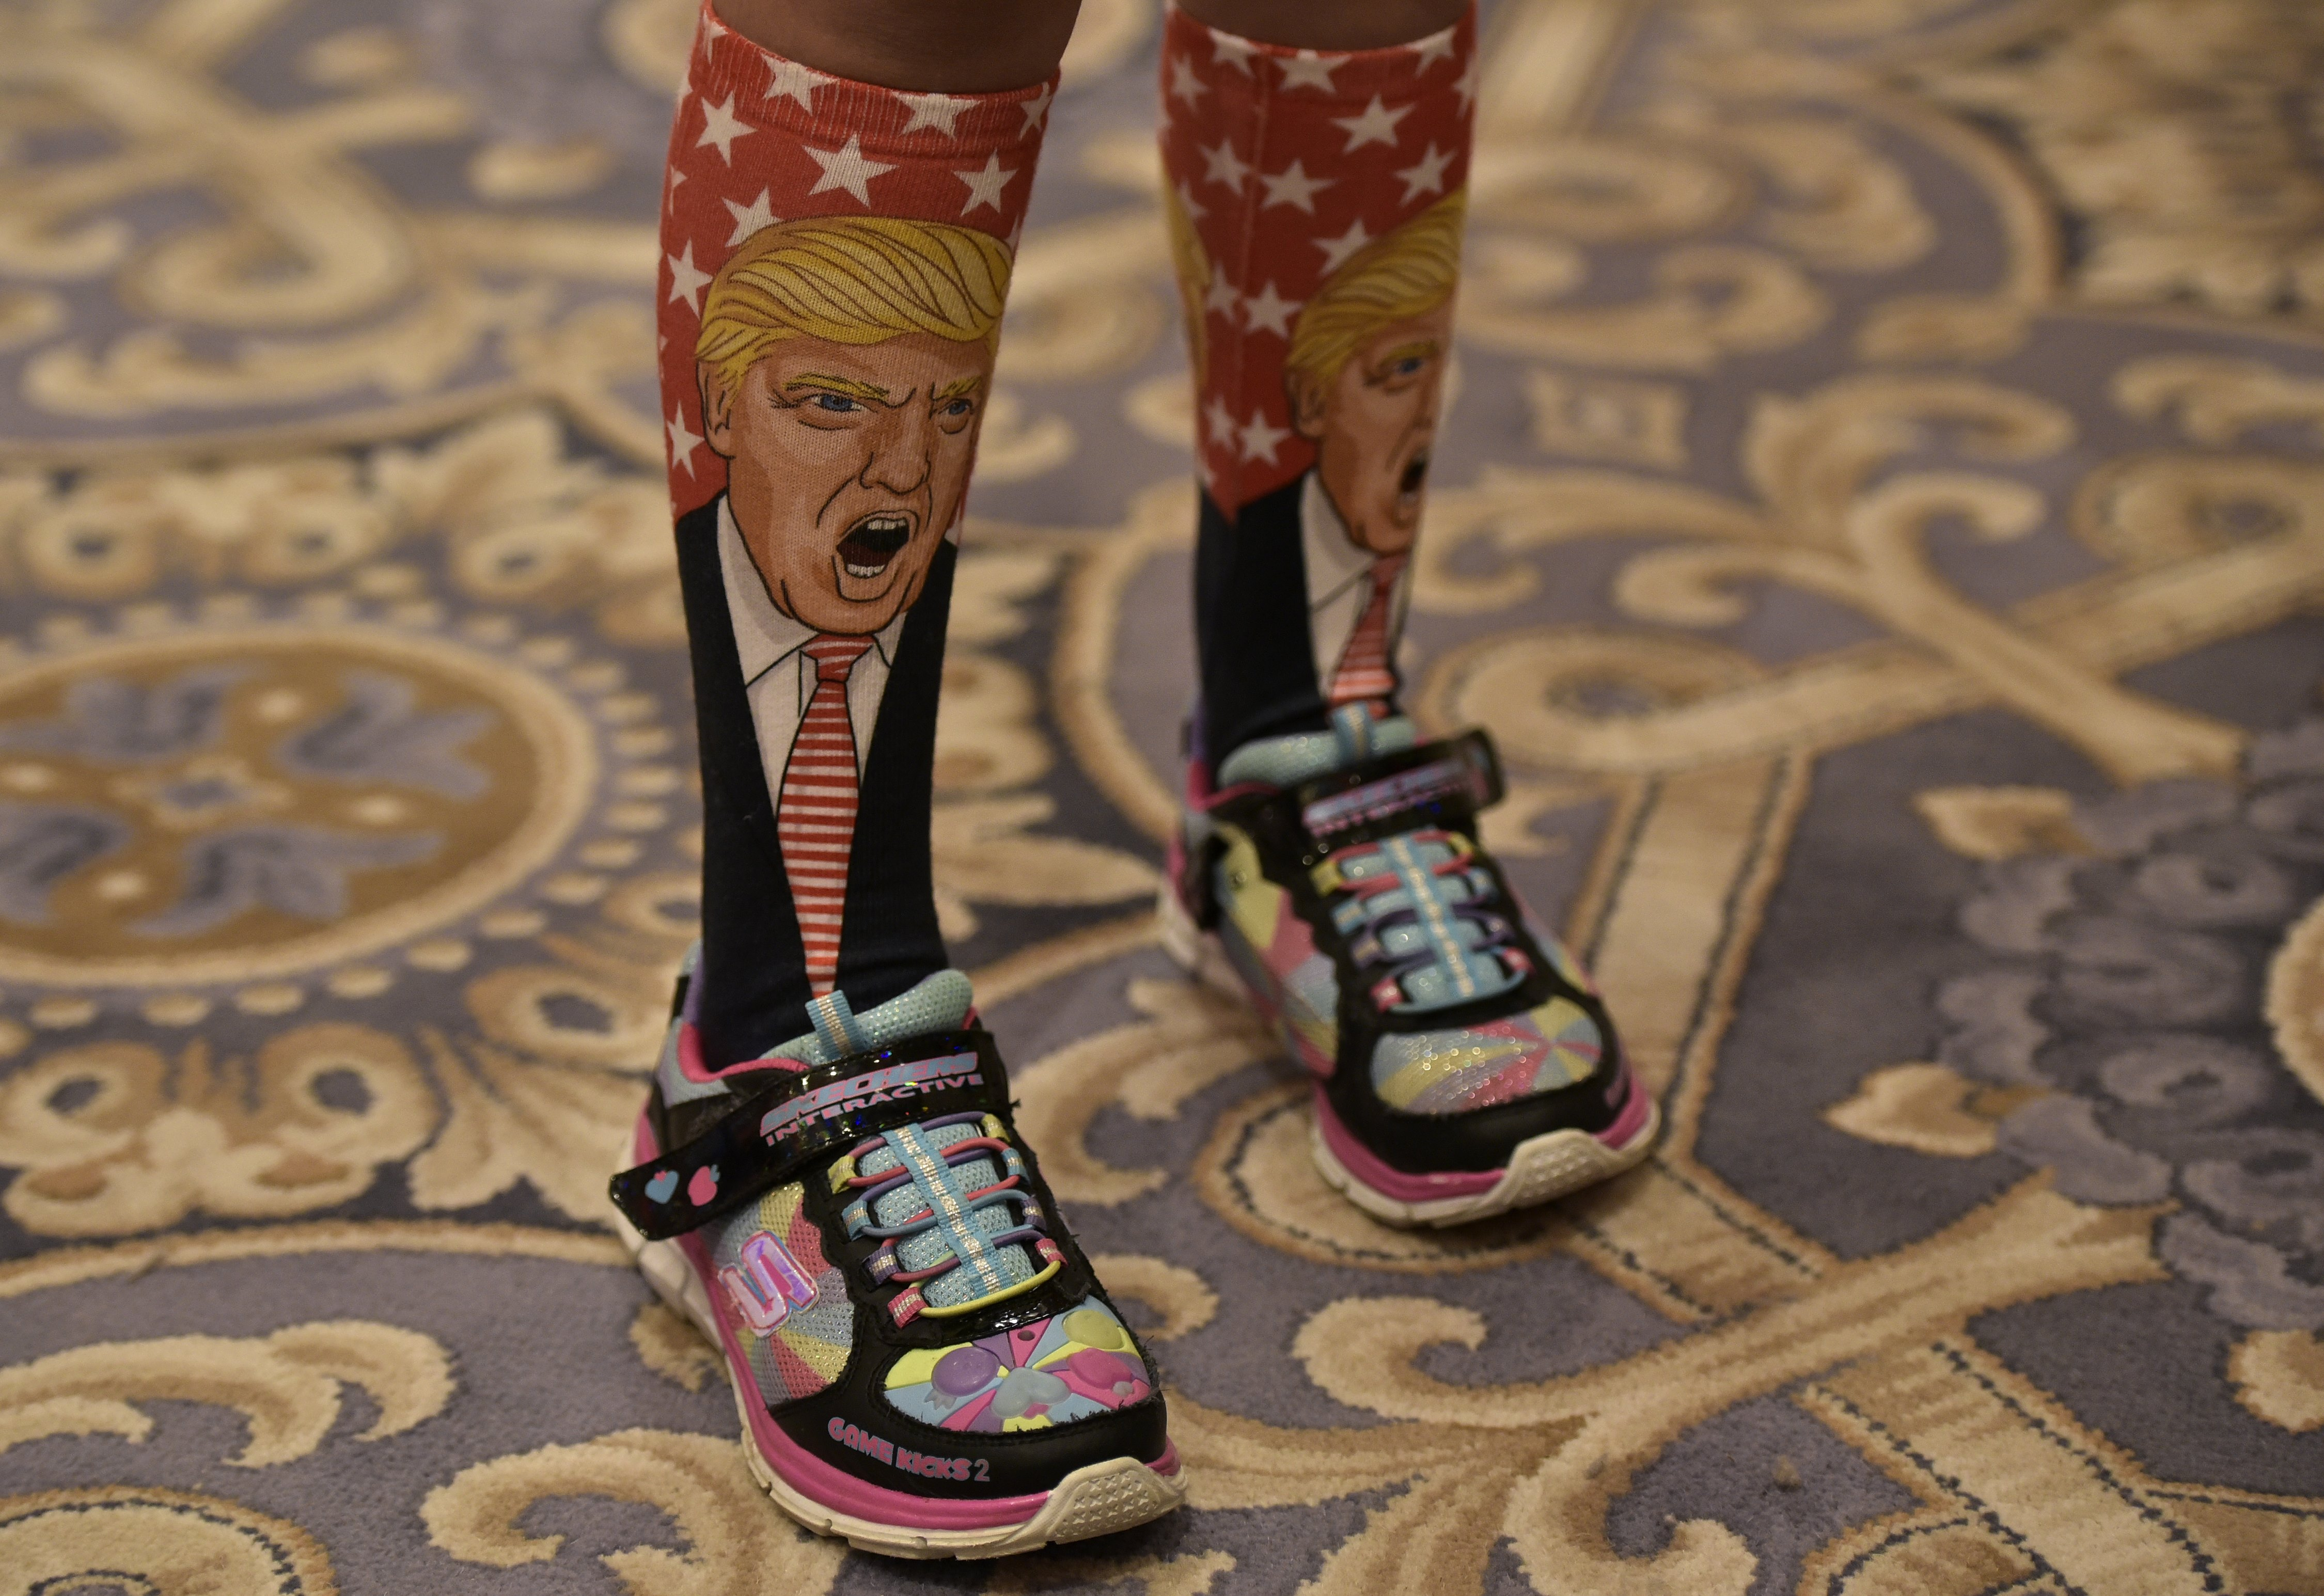 A young supporter wears socks with the image of Donald Trump ahead of his press conference at the Trump International Hotel, in Washington, DC, on Sept. 16, 2016.